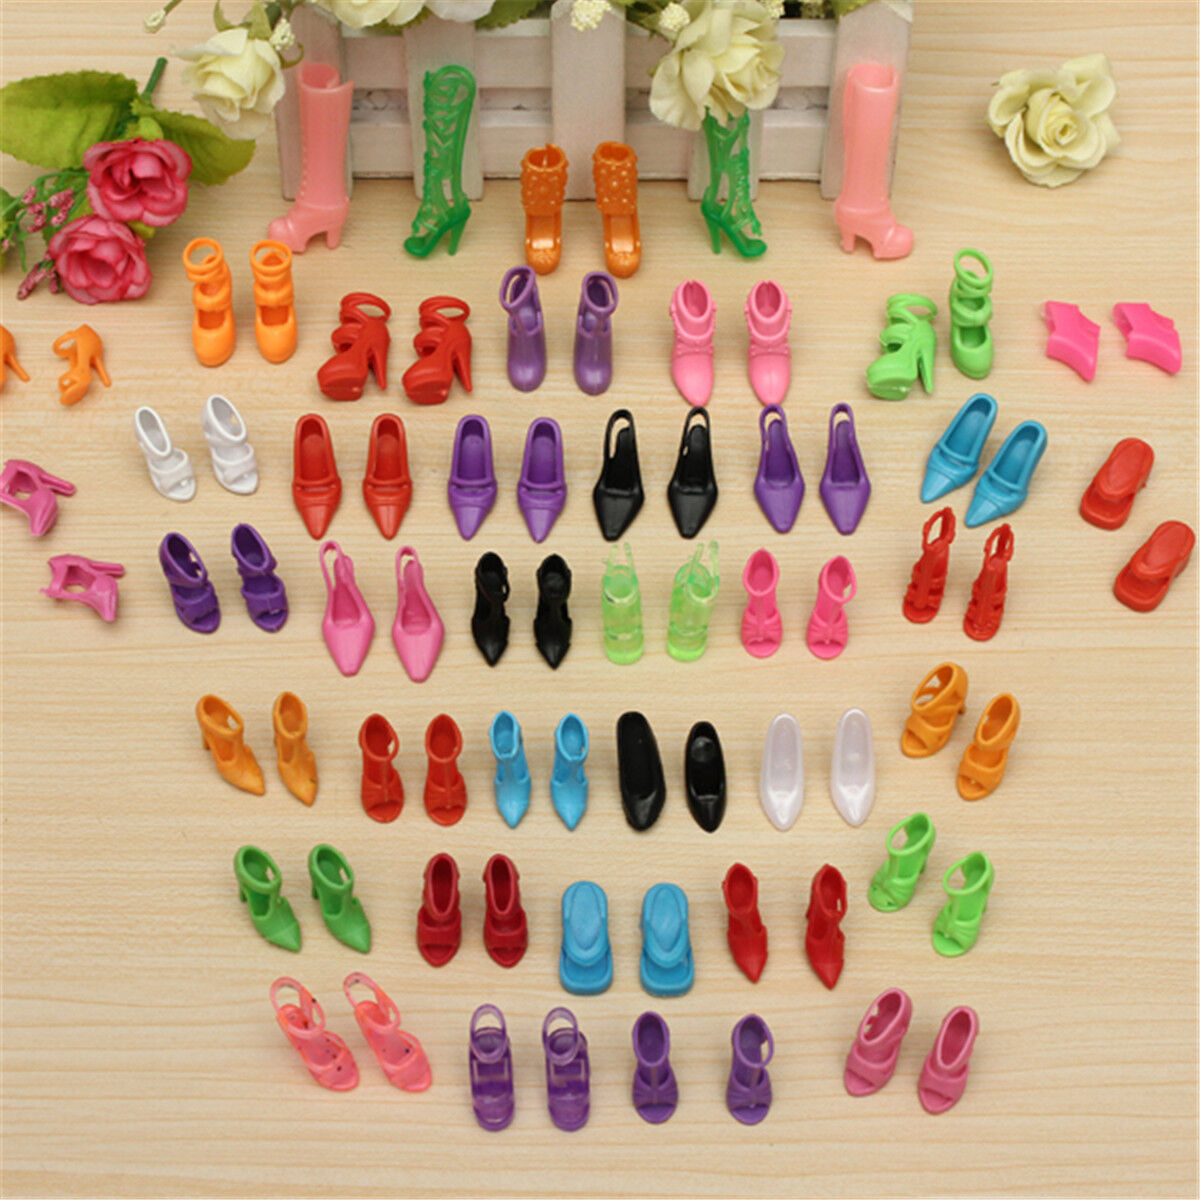 80pcs 40 Pairs Different High Heel Shoes Boots For Barbie Doll Clothes Dresses